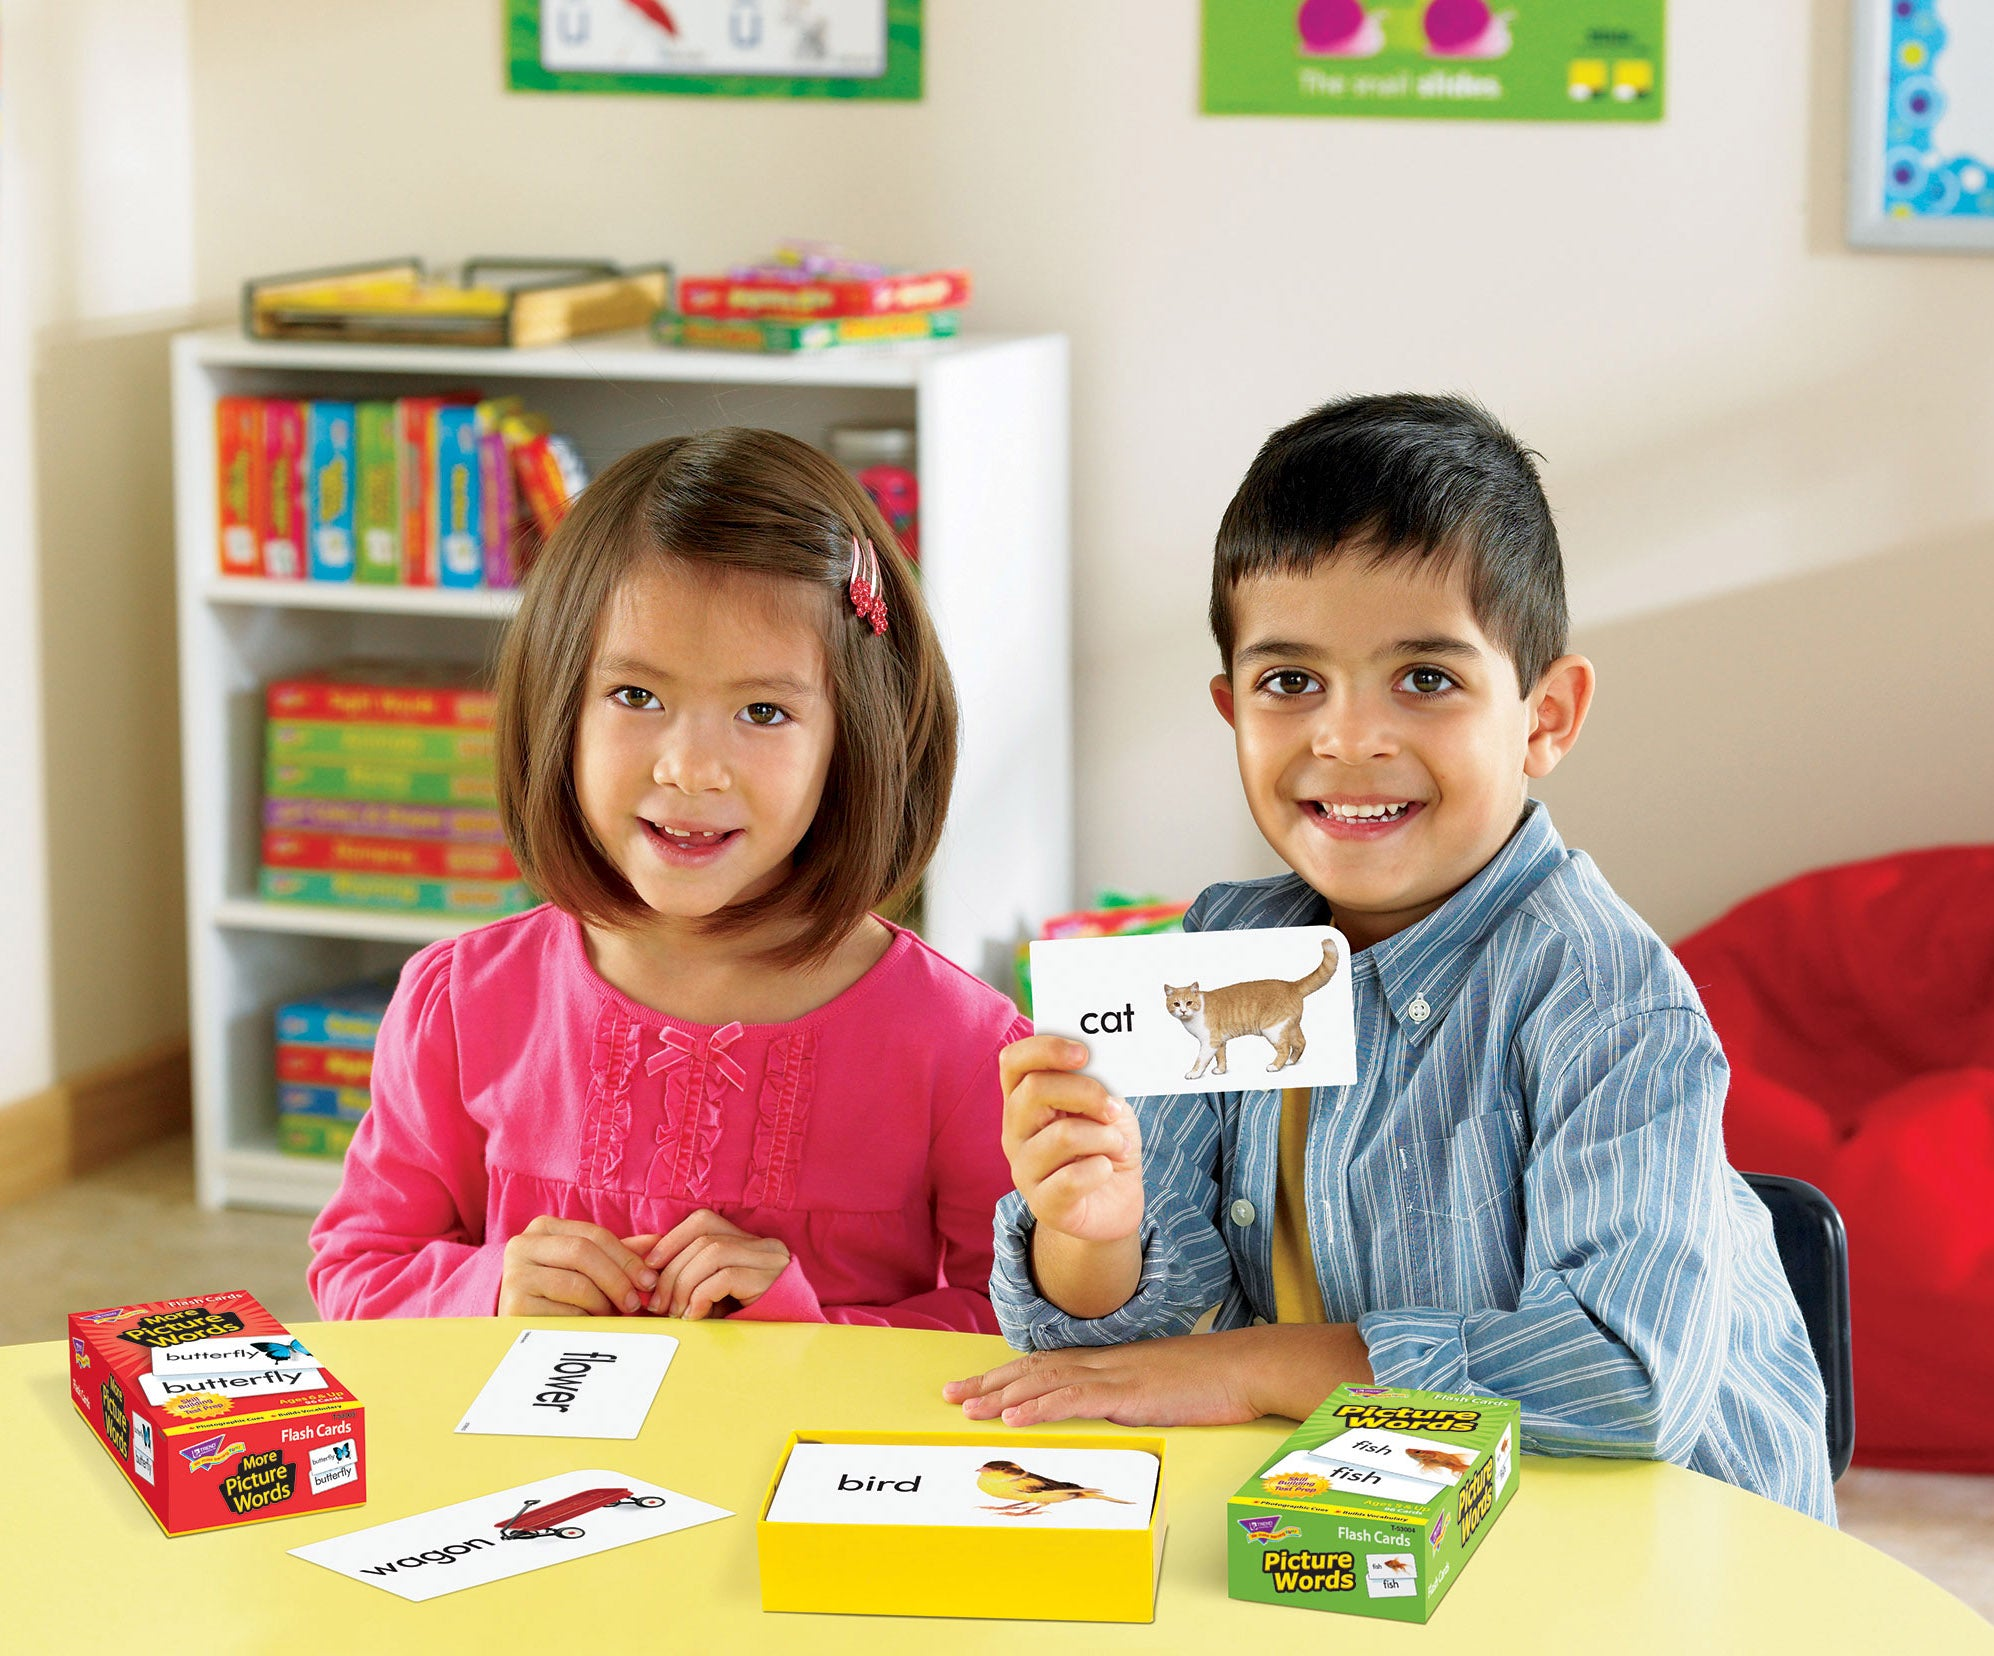 Flash cards for distance learning at home made in USA teaching products